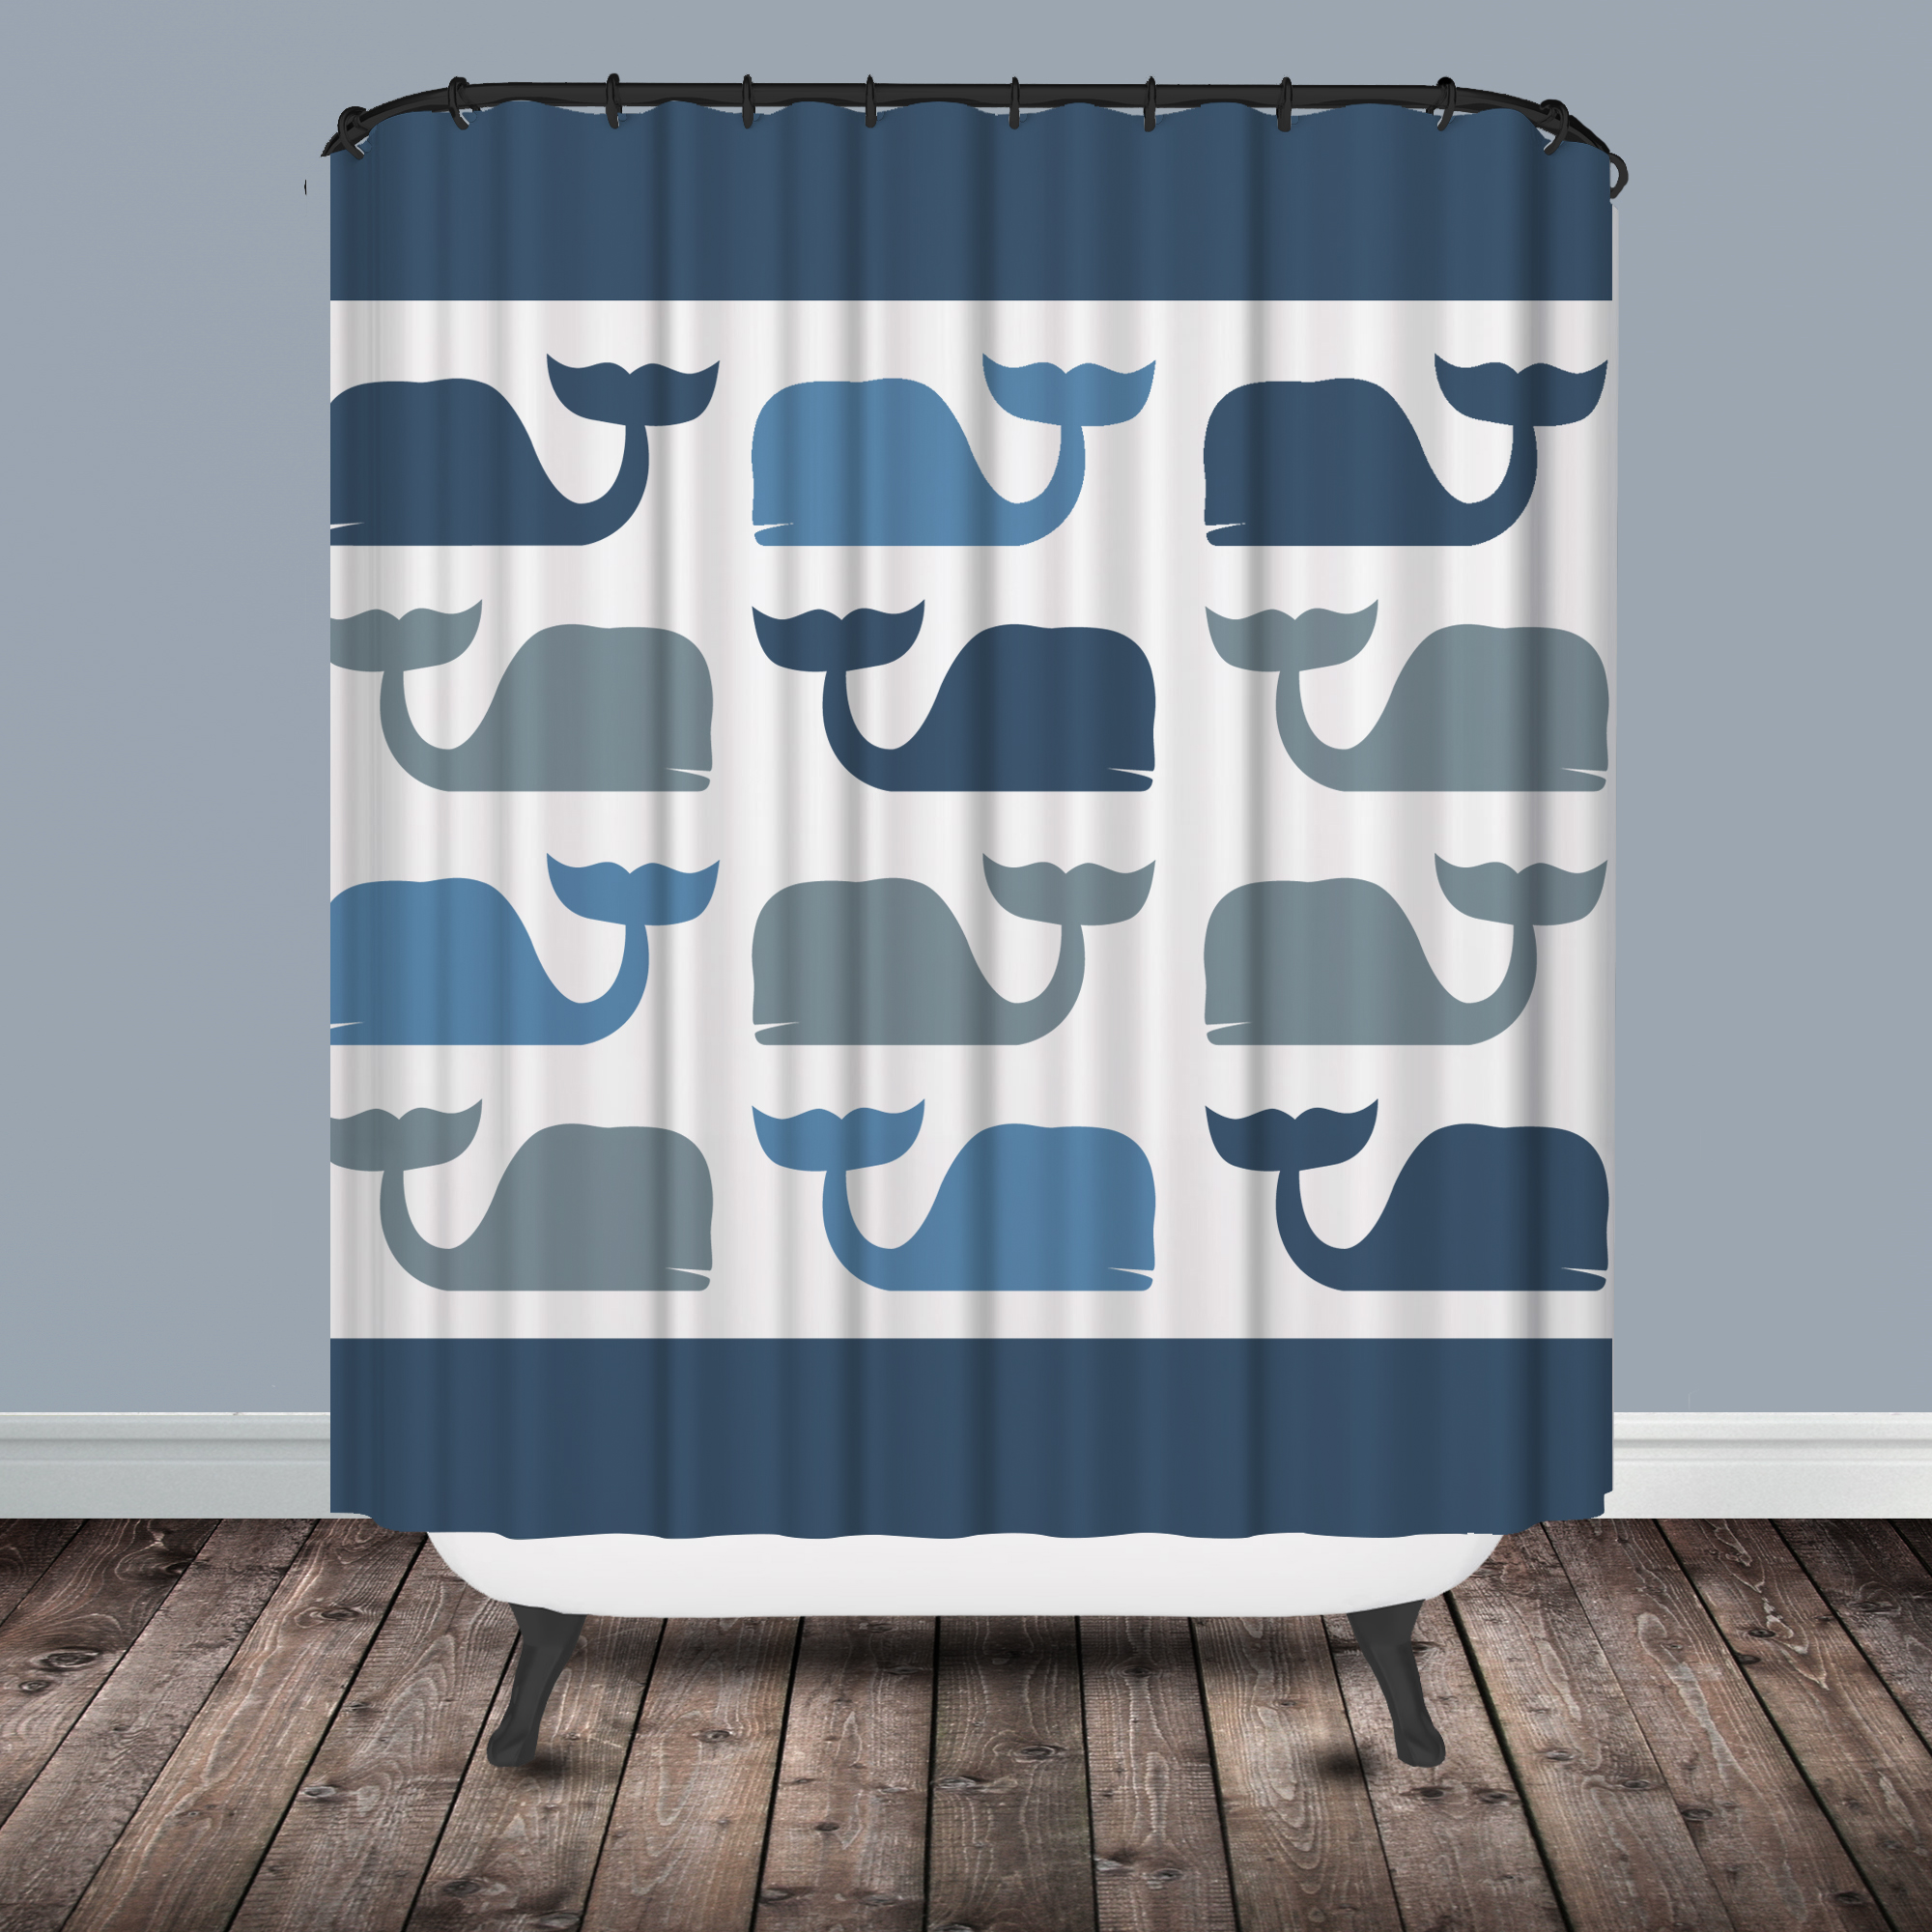 design curtains teal and gray full image of ikatrtain peach curtainsgray curtain grey size bathroom showerrtains with accessories unusual white cabinets shower ideas wall